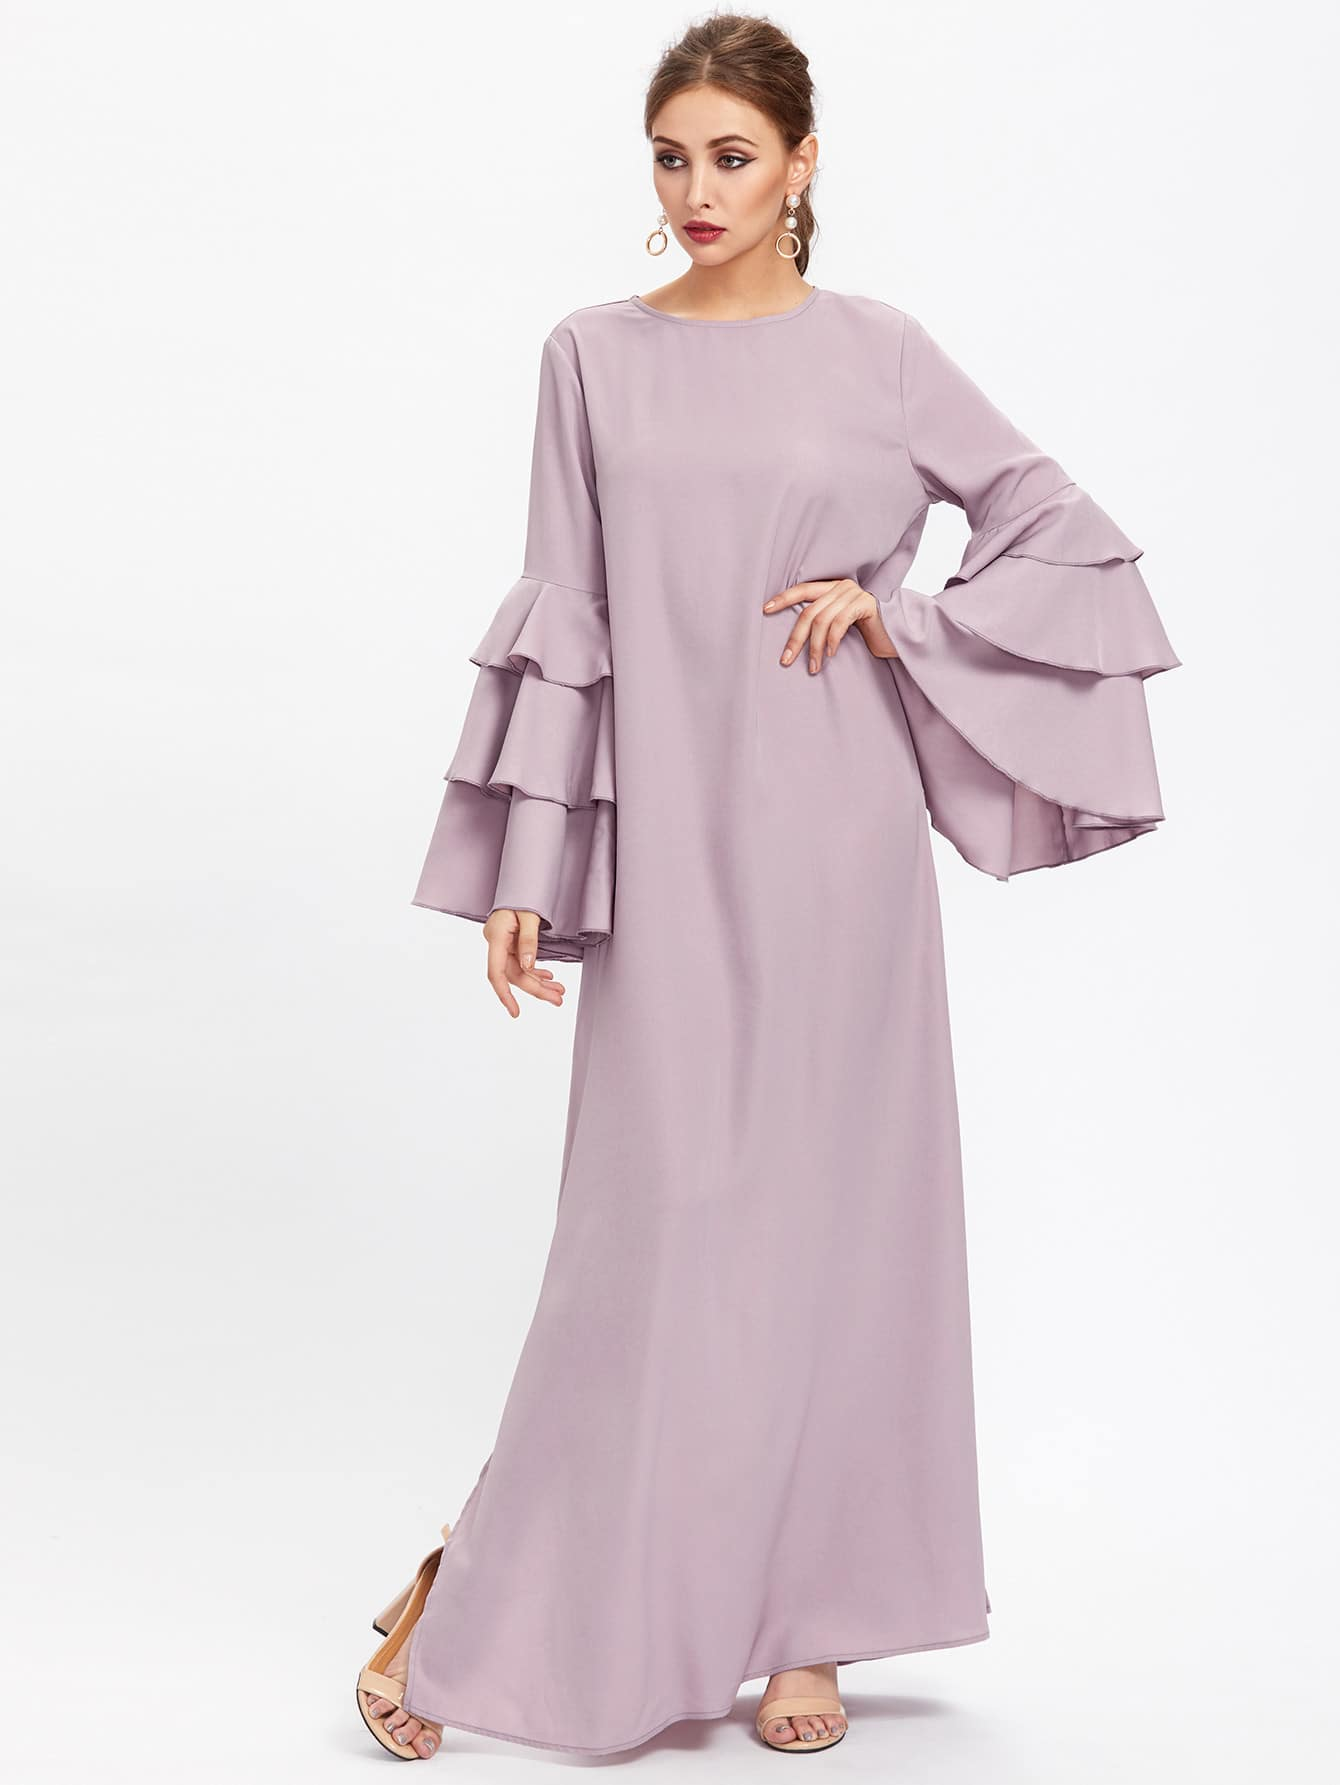 Exaggerate Layered Bell Sleeve Slit Hijab Evening Dress exaggerate bell sleeve buttoned keyhole dress